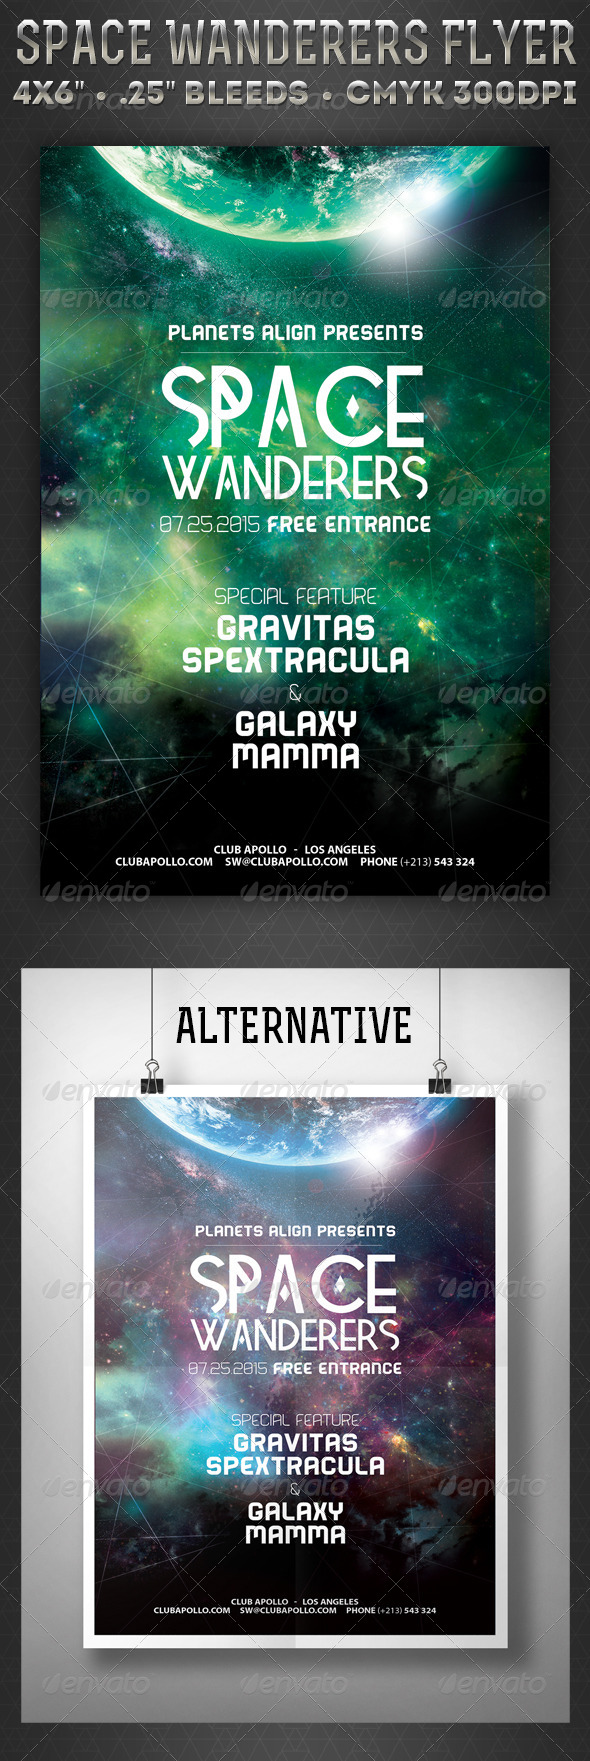 GraphicRiver Space Wanderers Flyer 7701526